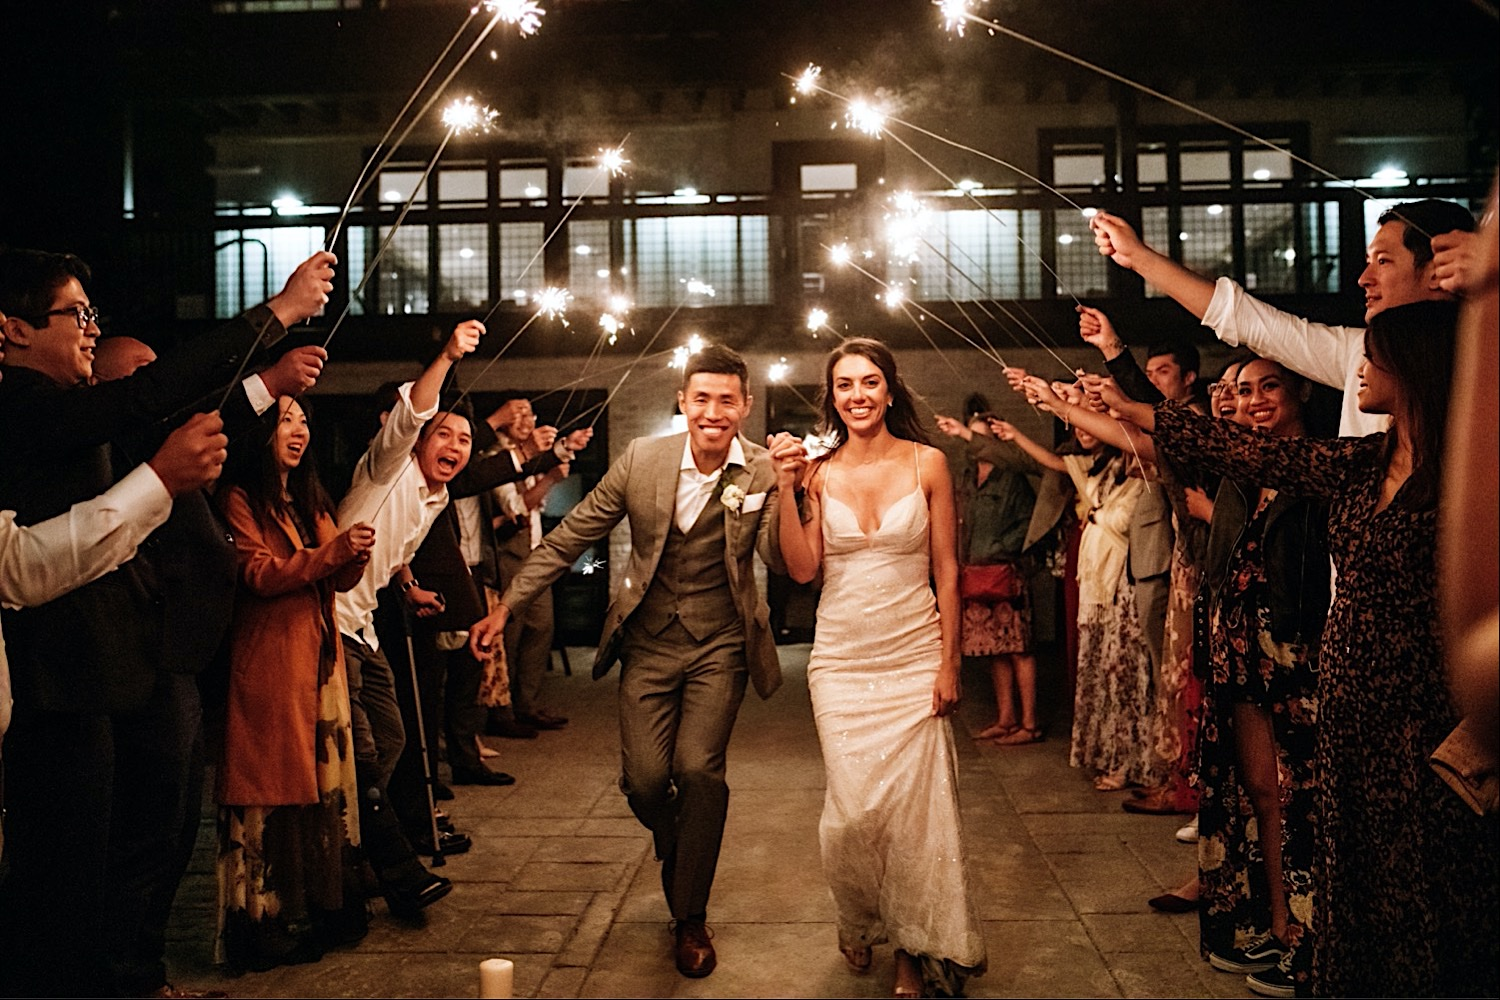 Bomoseen Lodge Wedding Venue - Bride and groom run out under sparklers as they exit their reception